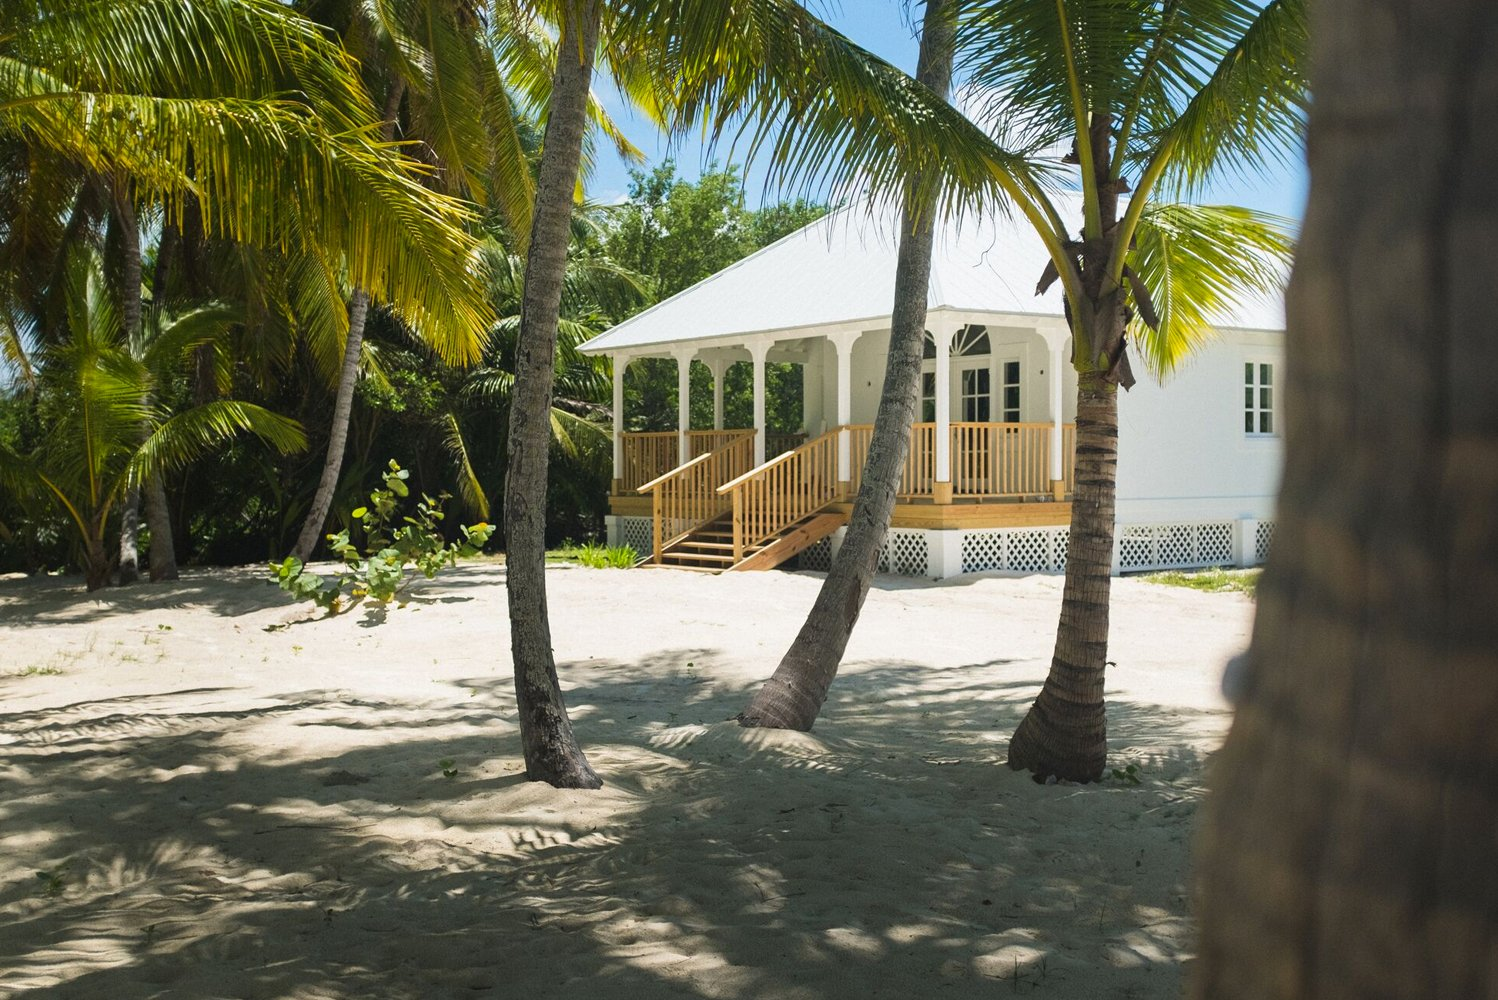 Bryan and Sarah Baeumler will open Caerula Mar Club on the island of South Andros in the Bahamas this November.